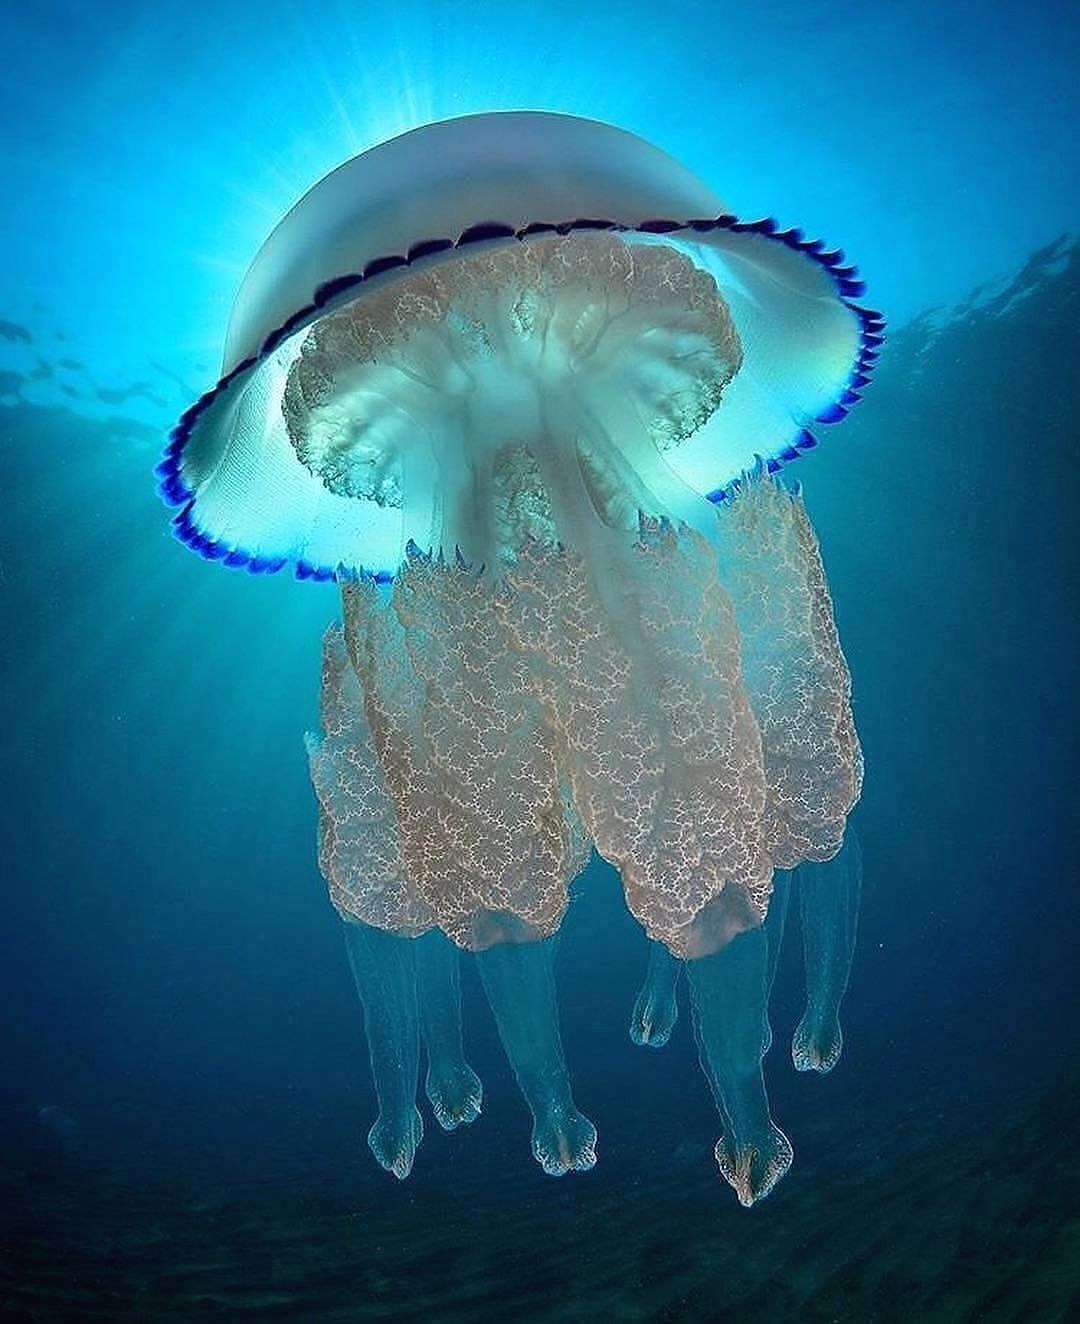 eet the SHIFF ARMS JELLYFISH! (Or barrel jellyfish